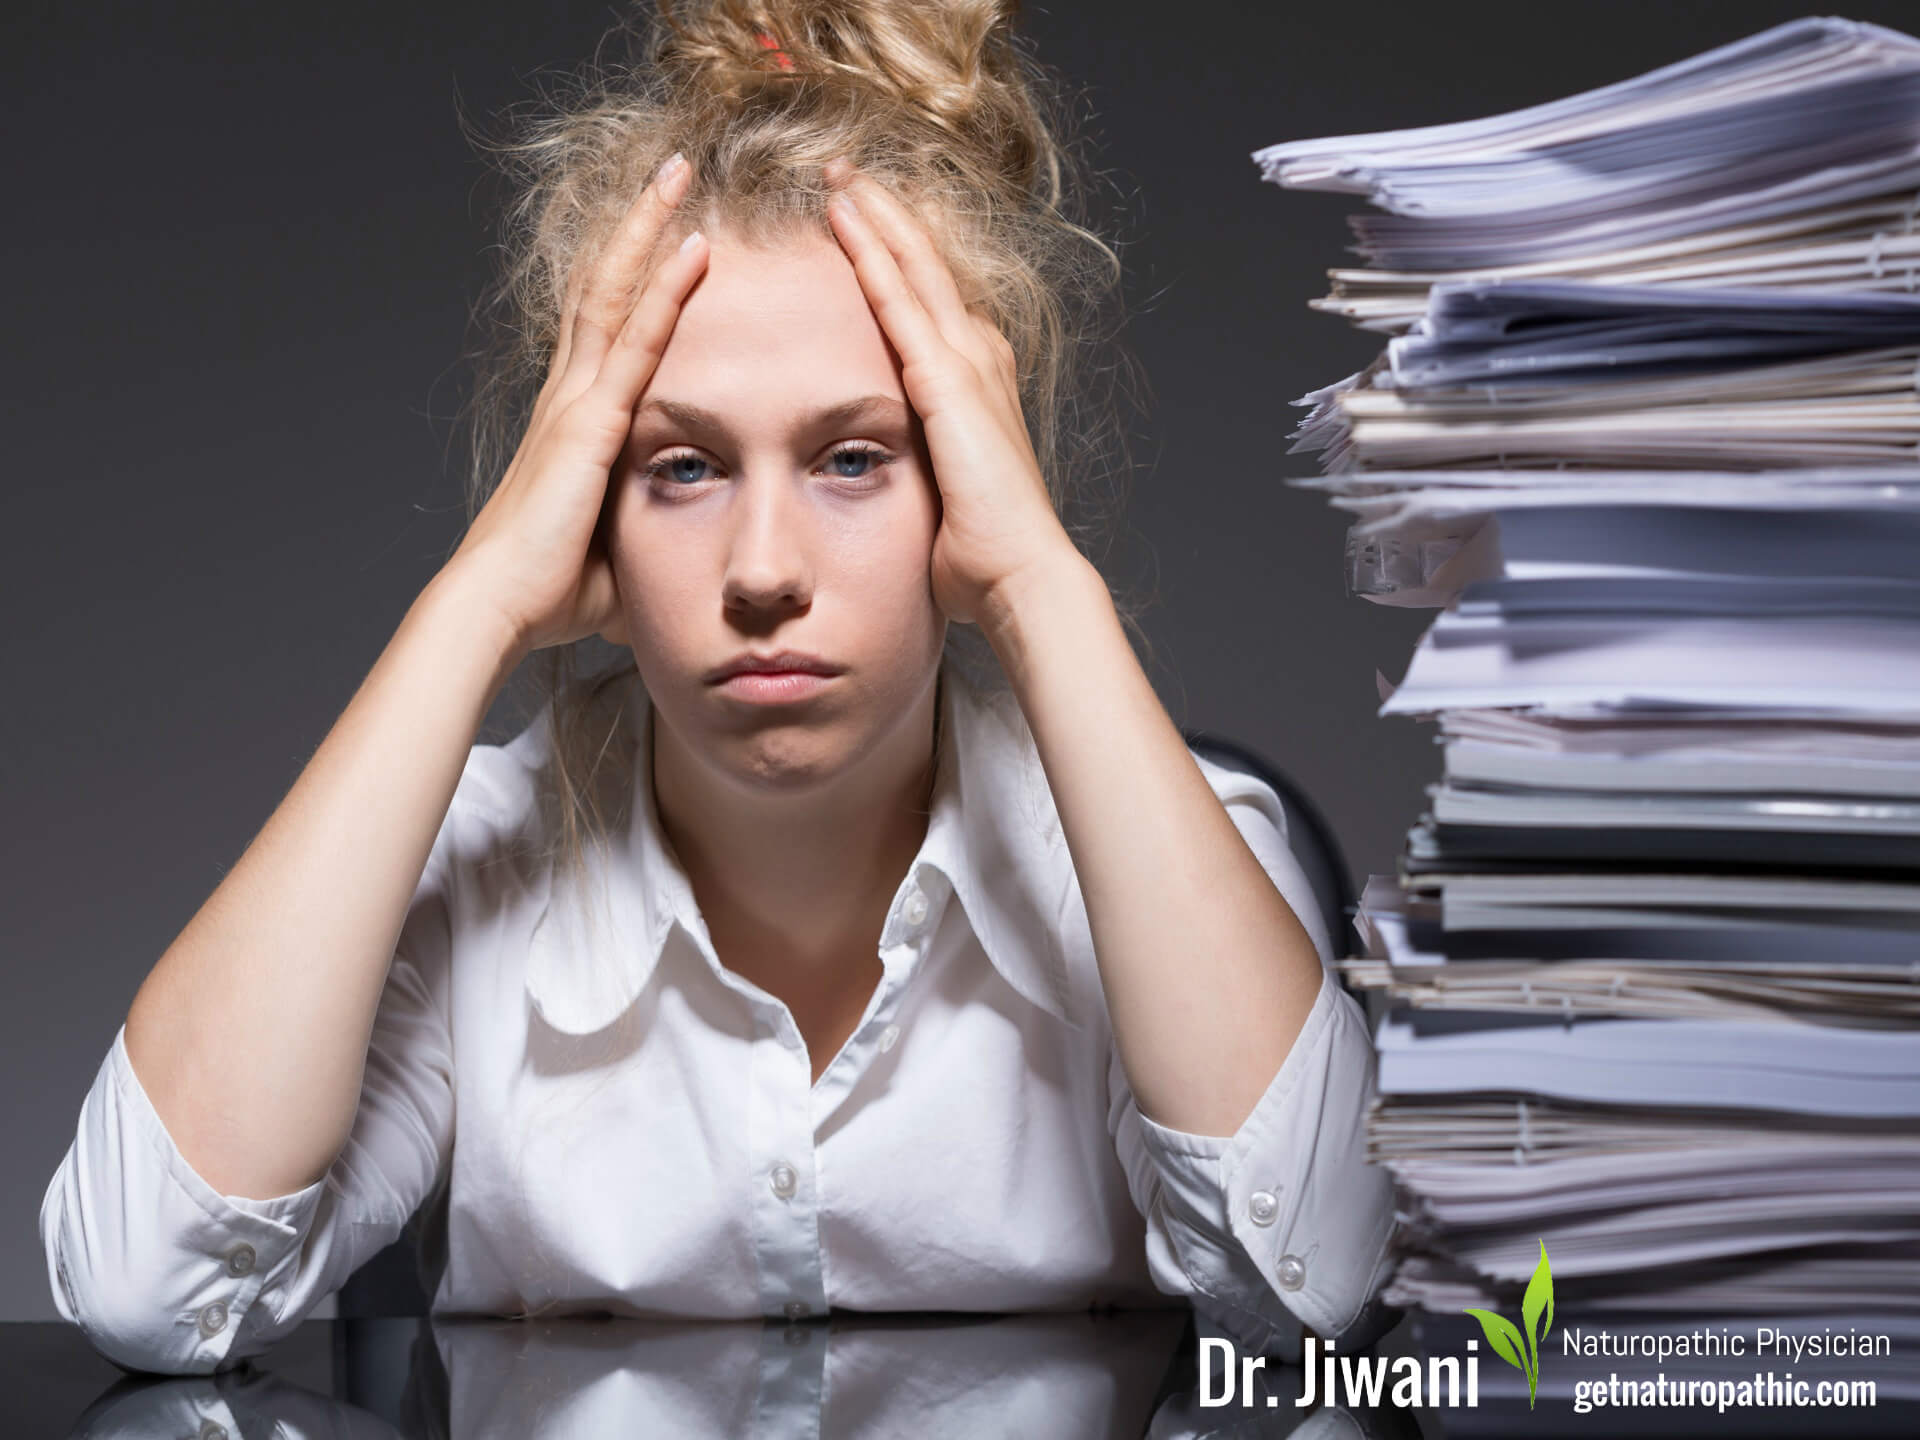 Stress Adrenal Fatigue Sugar the Sweet Poison: The Alarming Ways Sugar Damages Your Body & Brain* | Dr. Jiwani's Naturopathic Nuggets Blog